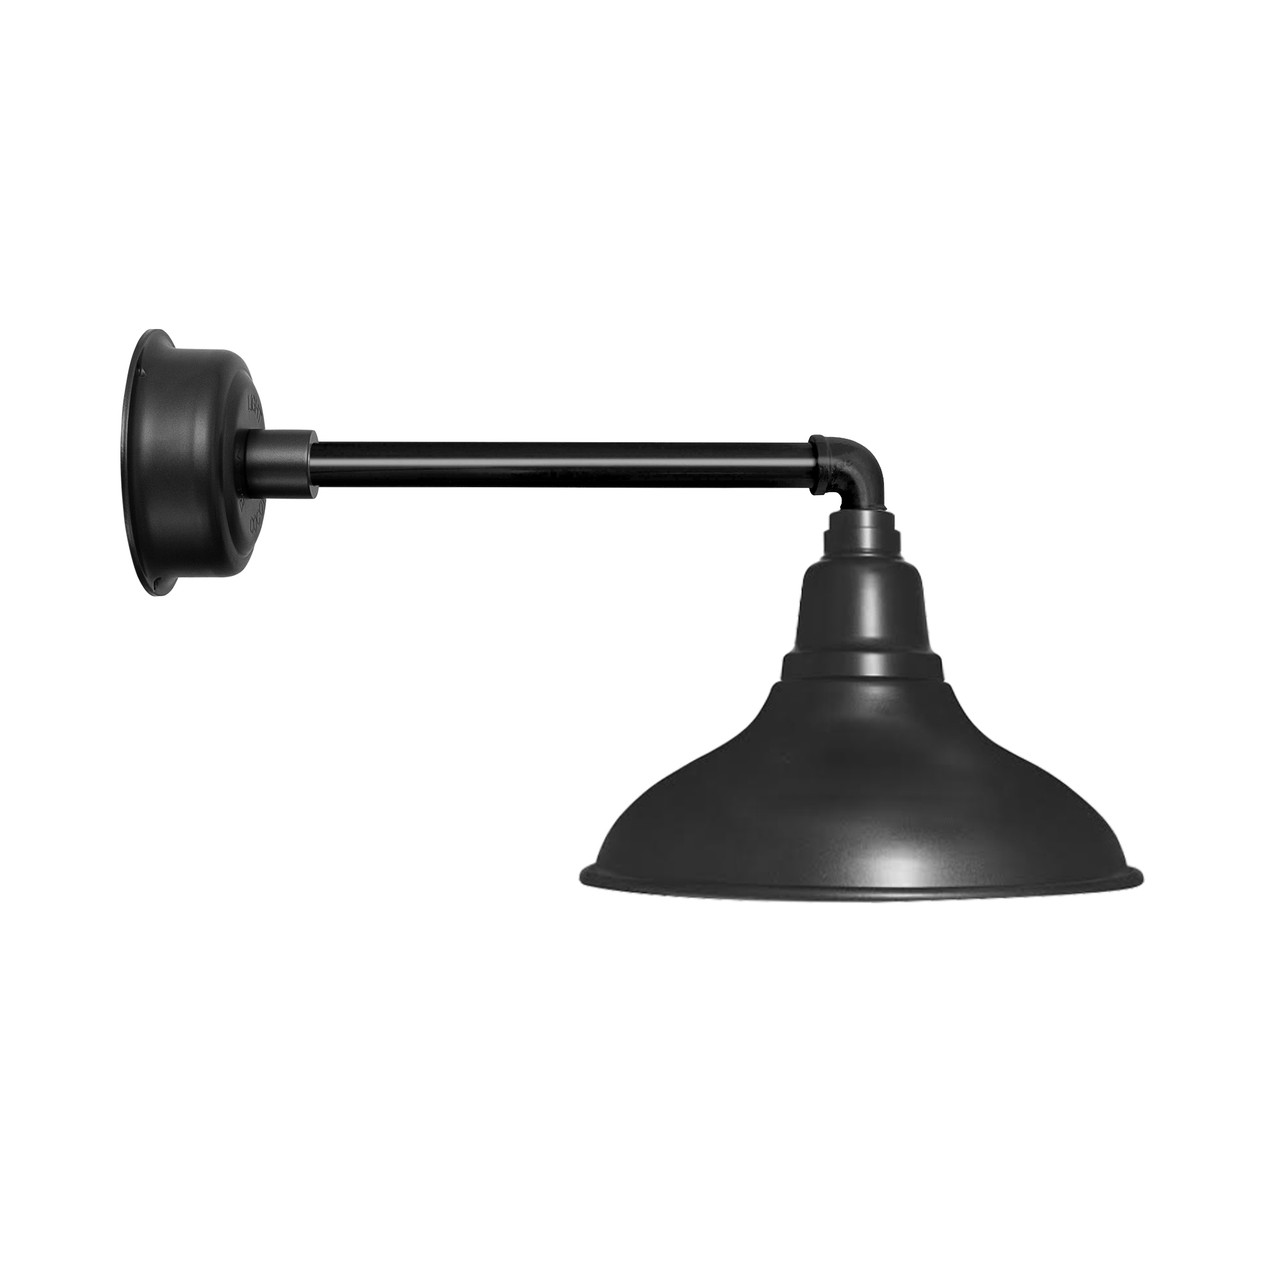 12 Dahlia Led Barn Light With Metropolitan Arm In Matte Black Cocoweb Quality Led Lighting Specialists